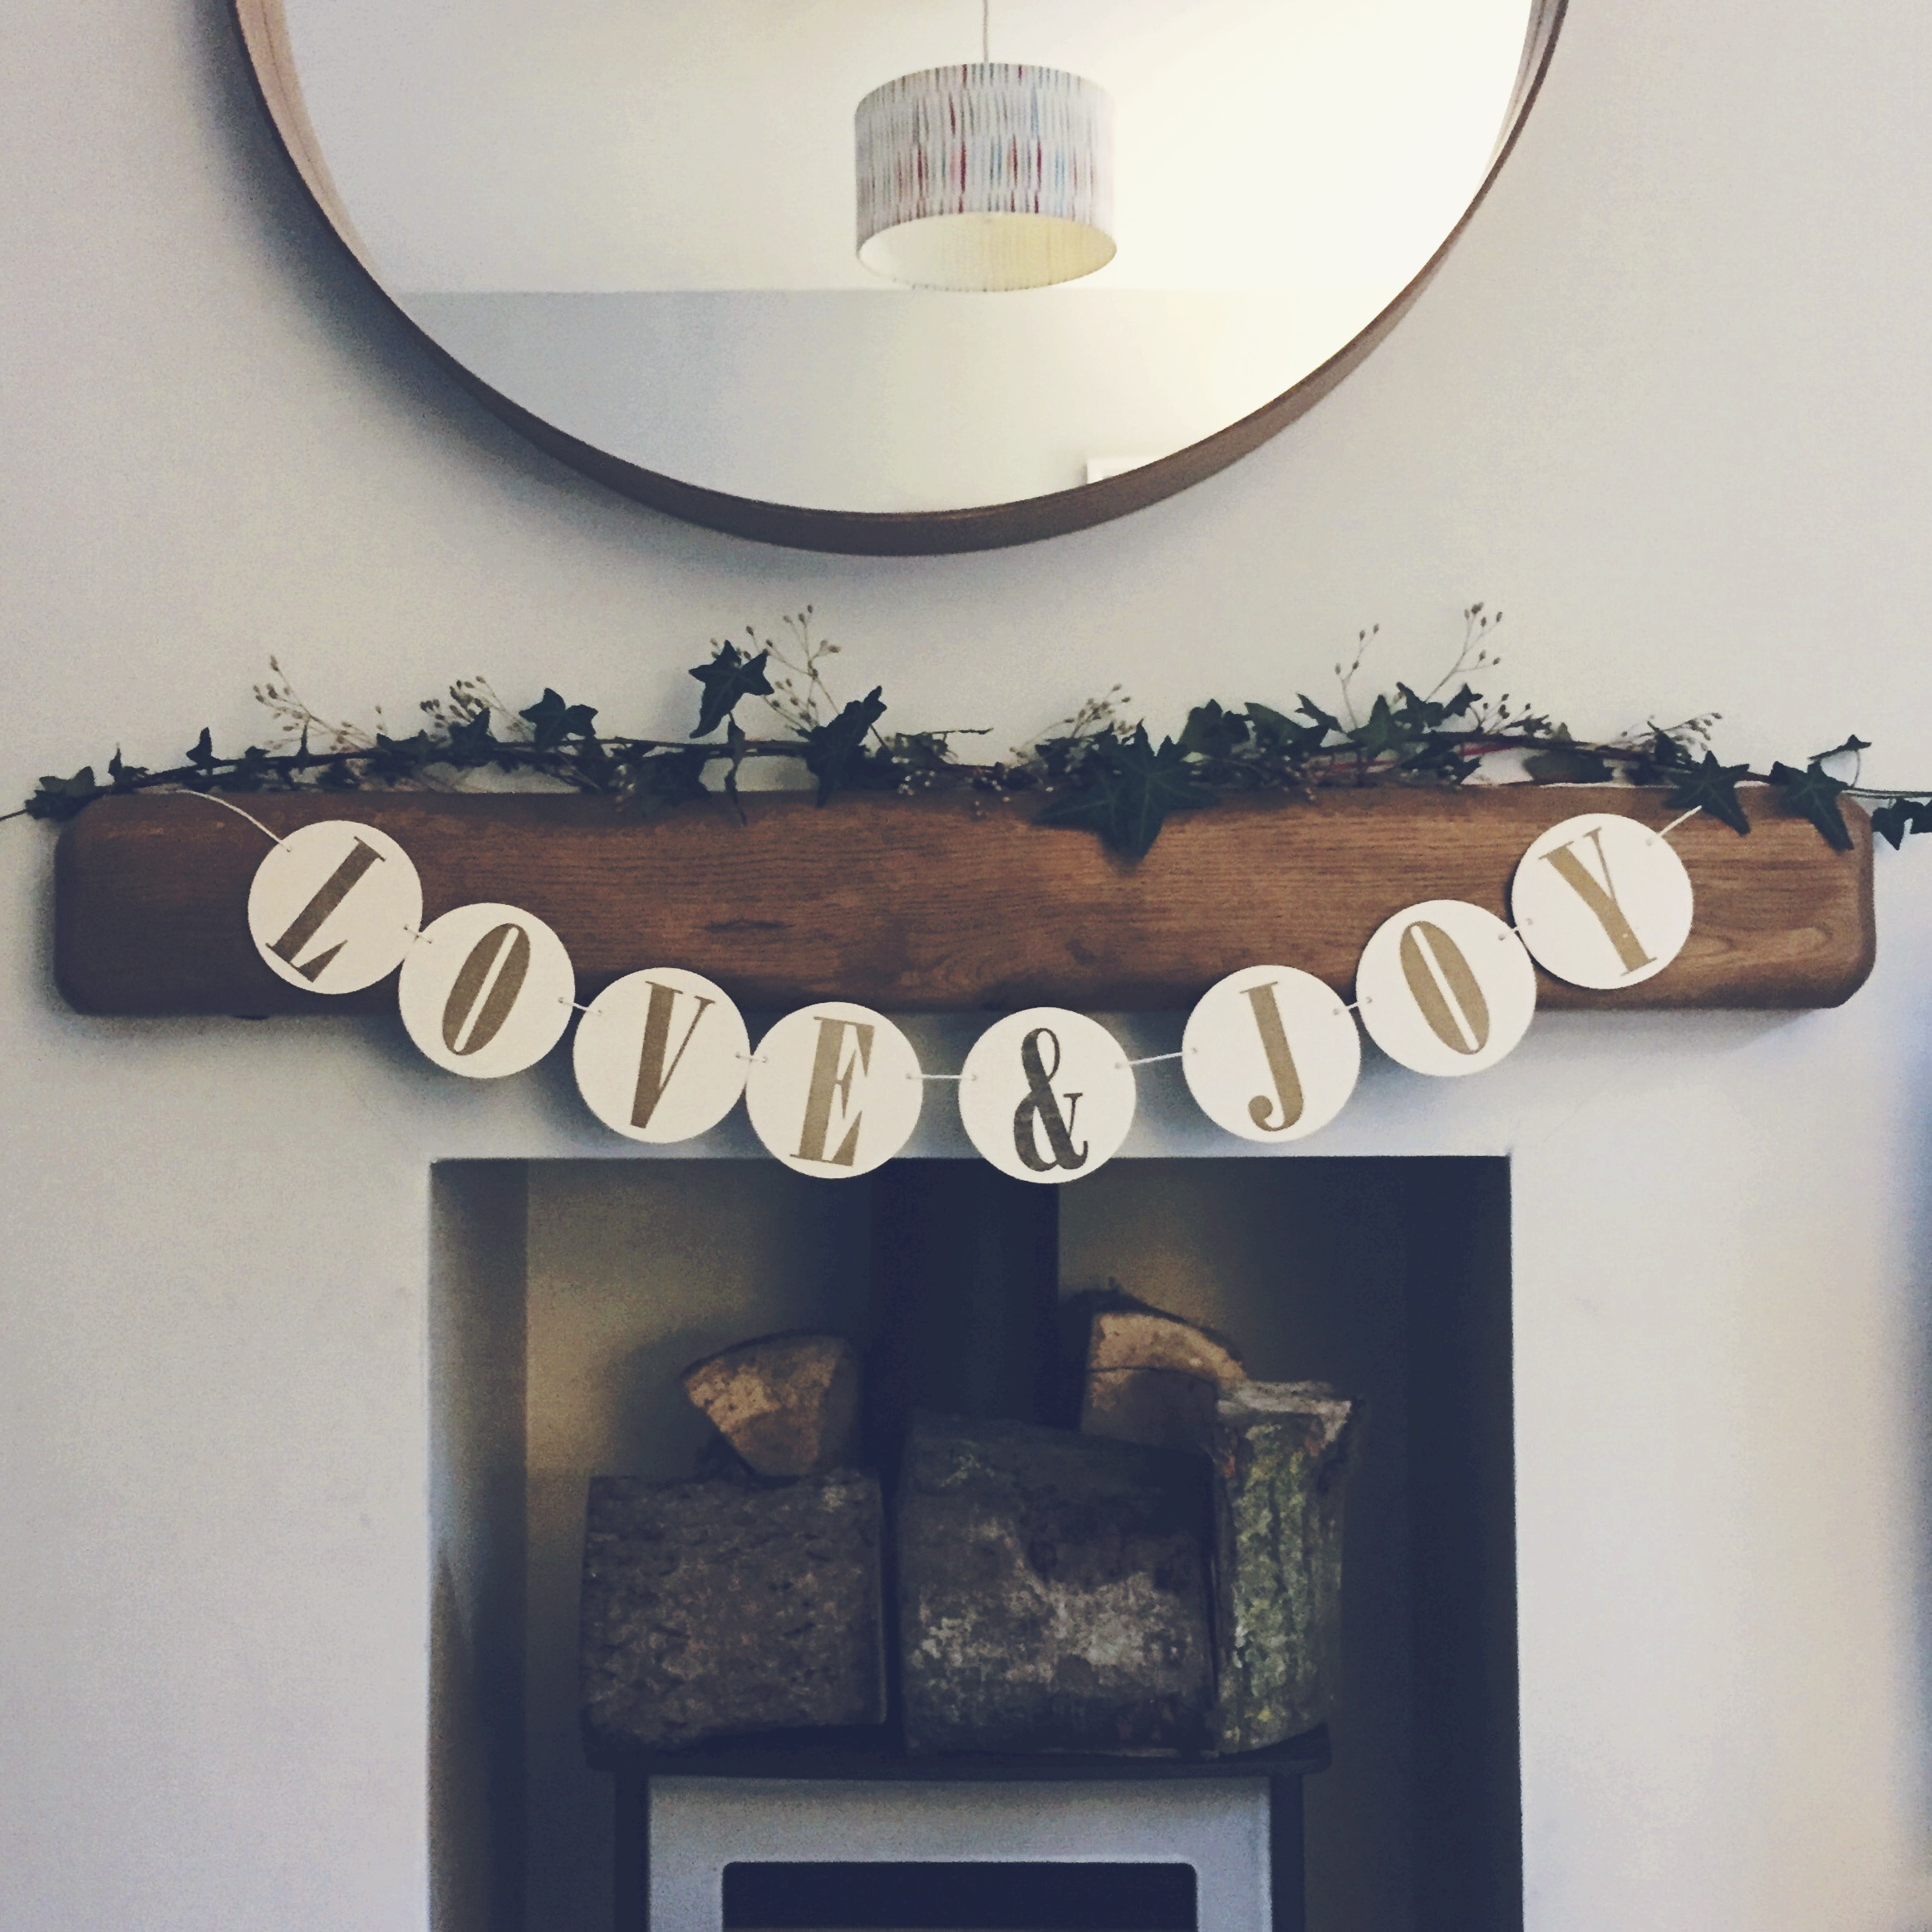 Ivy and dried wildflowers collected from the woods made a festive garland for our fireplace.